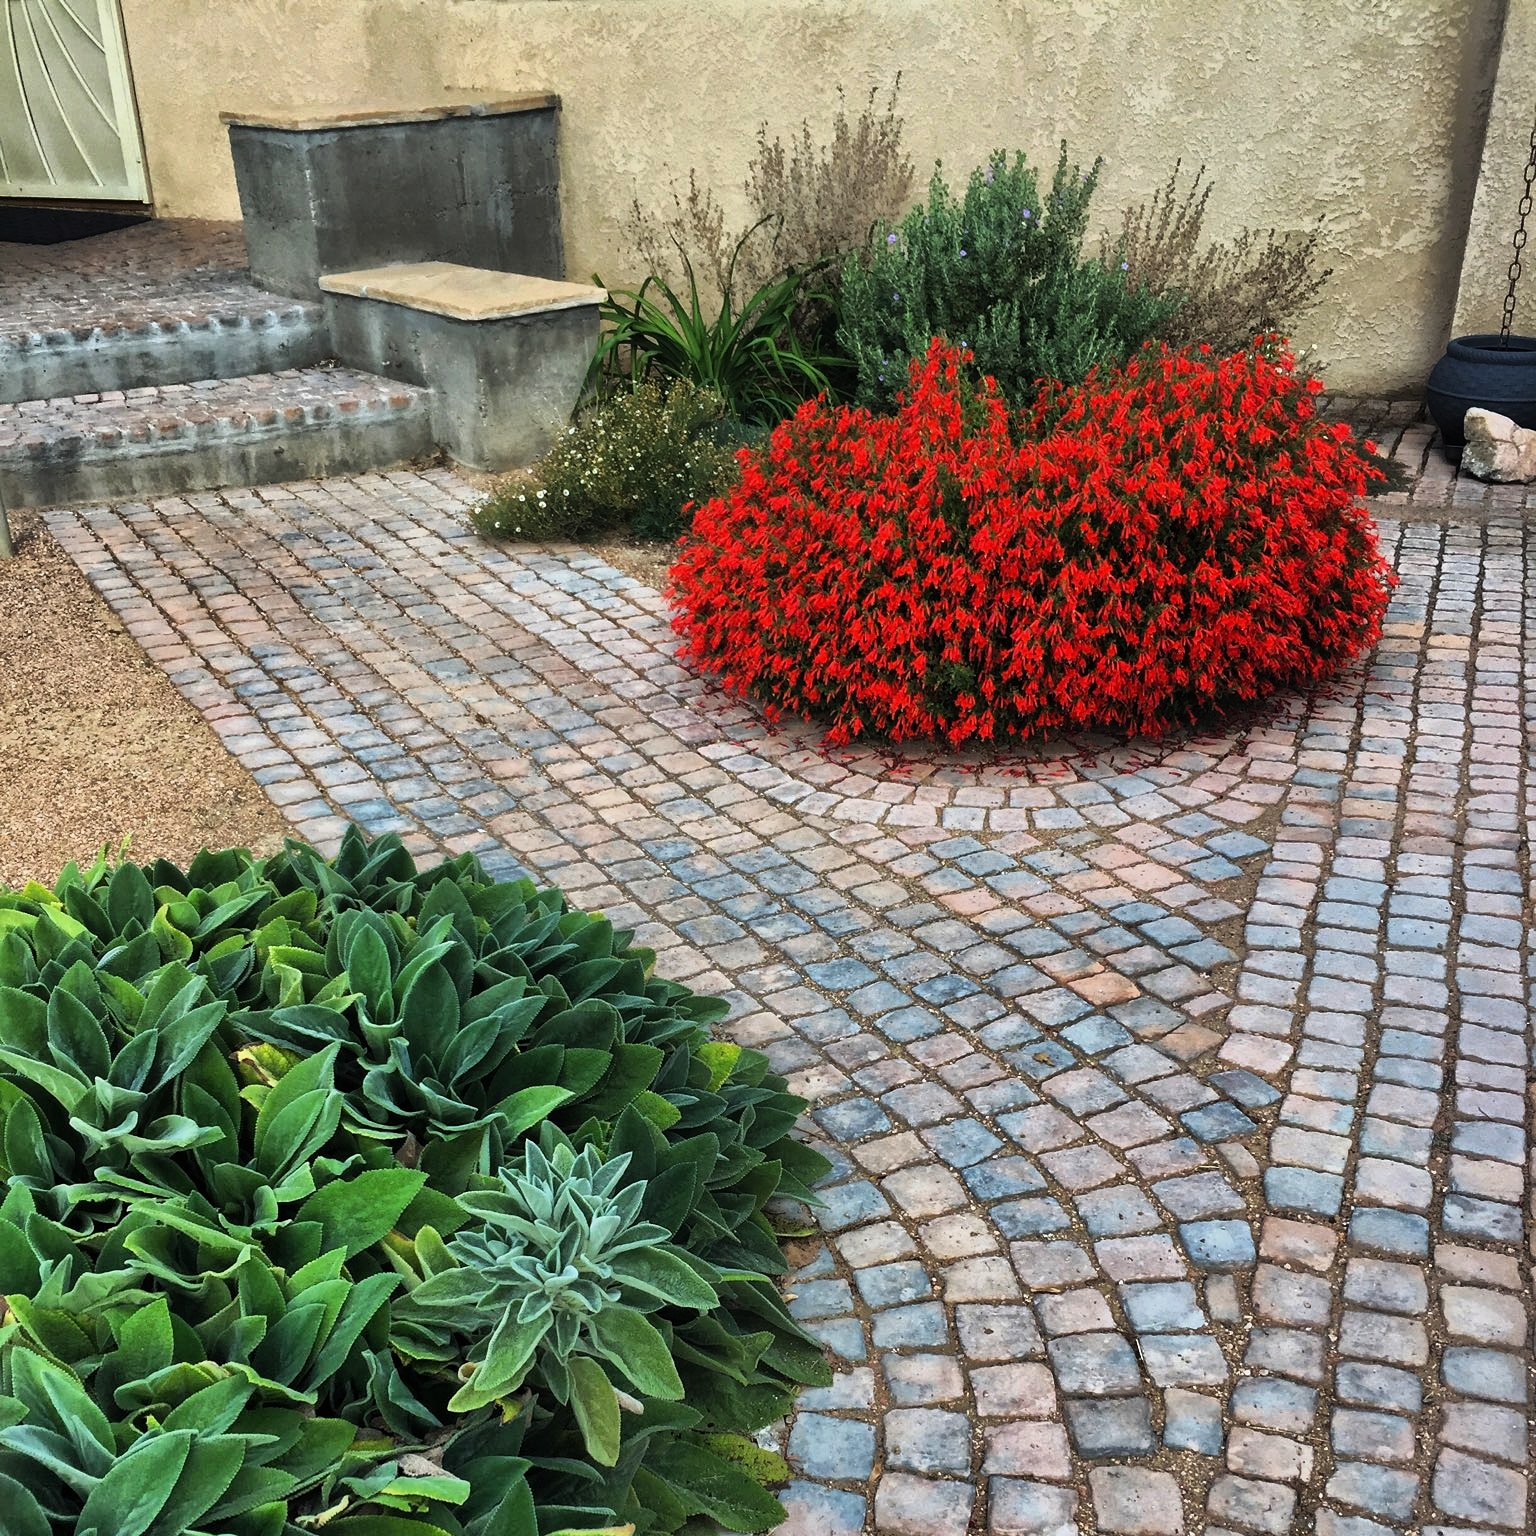 Fall greetings from all of us here at Southwest Horticulture. Here is a photo taken by Louis of a design by George Radnovich from Sites Southwest that we installed last spring. The permeable paver walkways are great quality with a timeless appearance and are manufactured locally by a company called Riccobene. The red flowing plant is Epilobium canum or Hummingbird Trumpet.  #southwesthorticulture #horticulture #landscapes #landscaping #landscapedesign #nativeplants #xeriscaping #xeriscape #waterconservation #gardening #albuquerque #newmexico